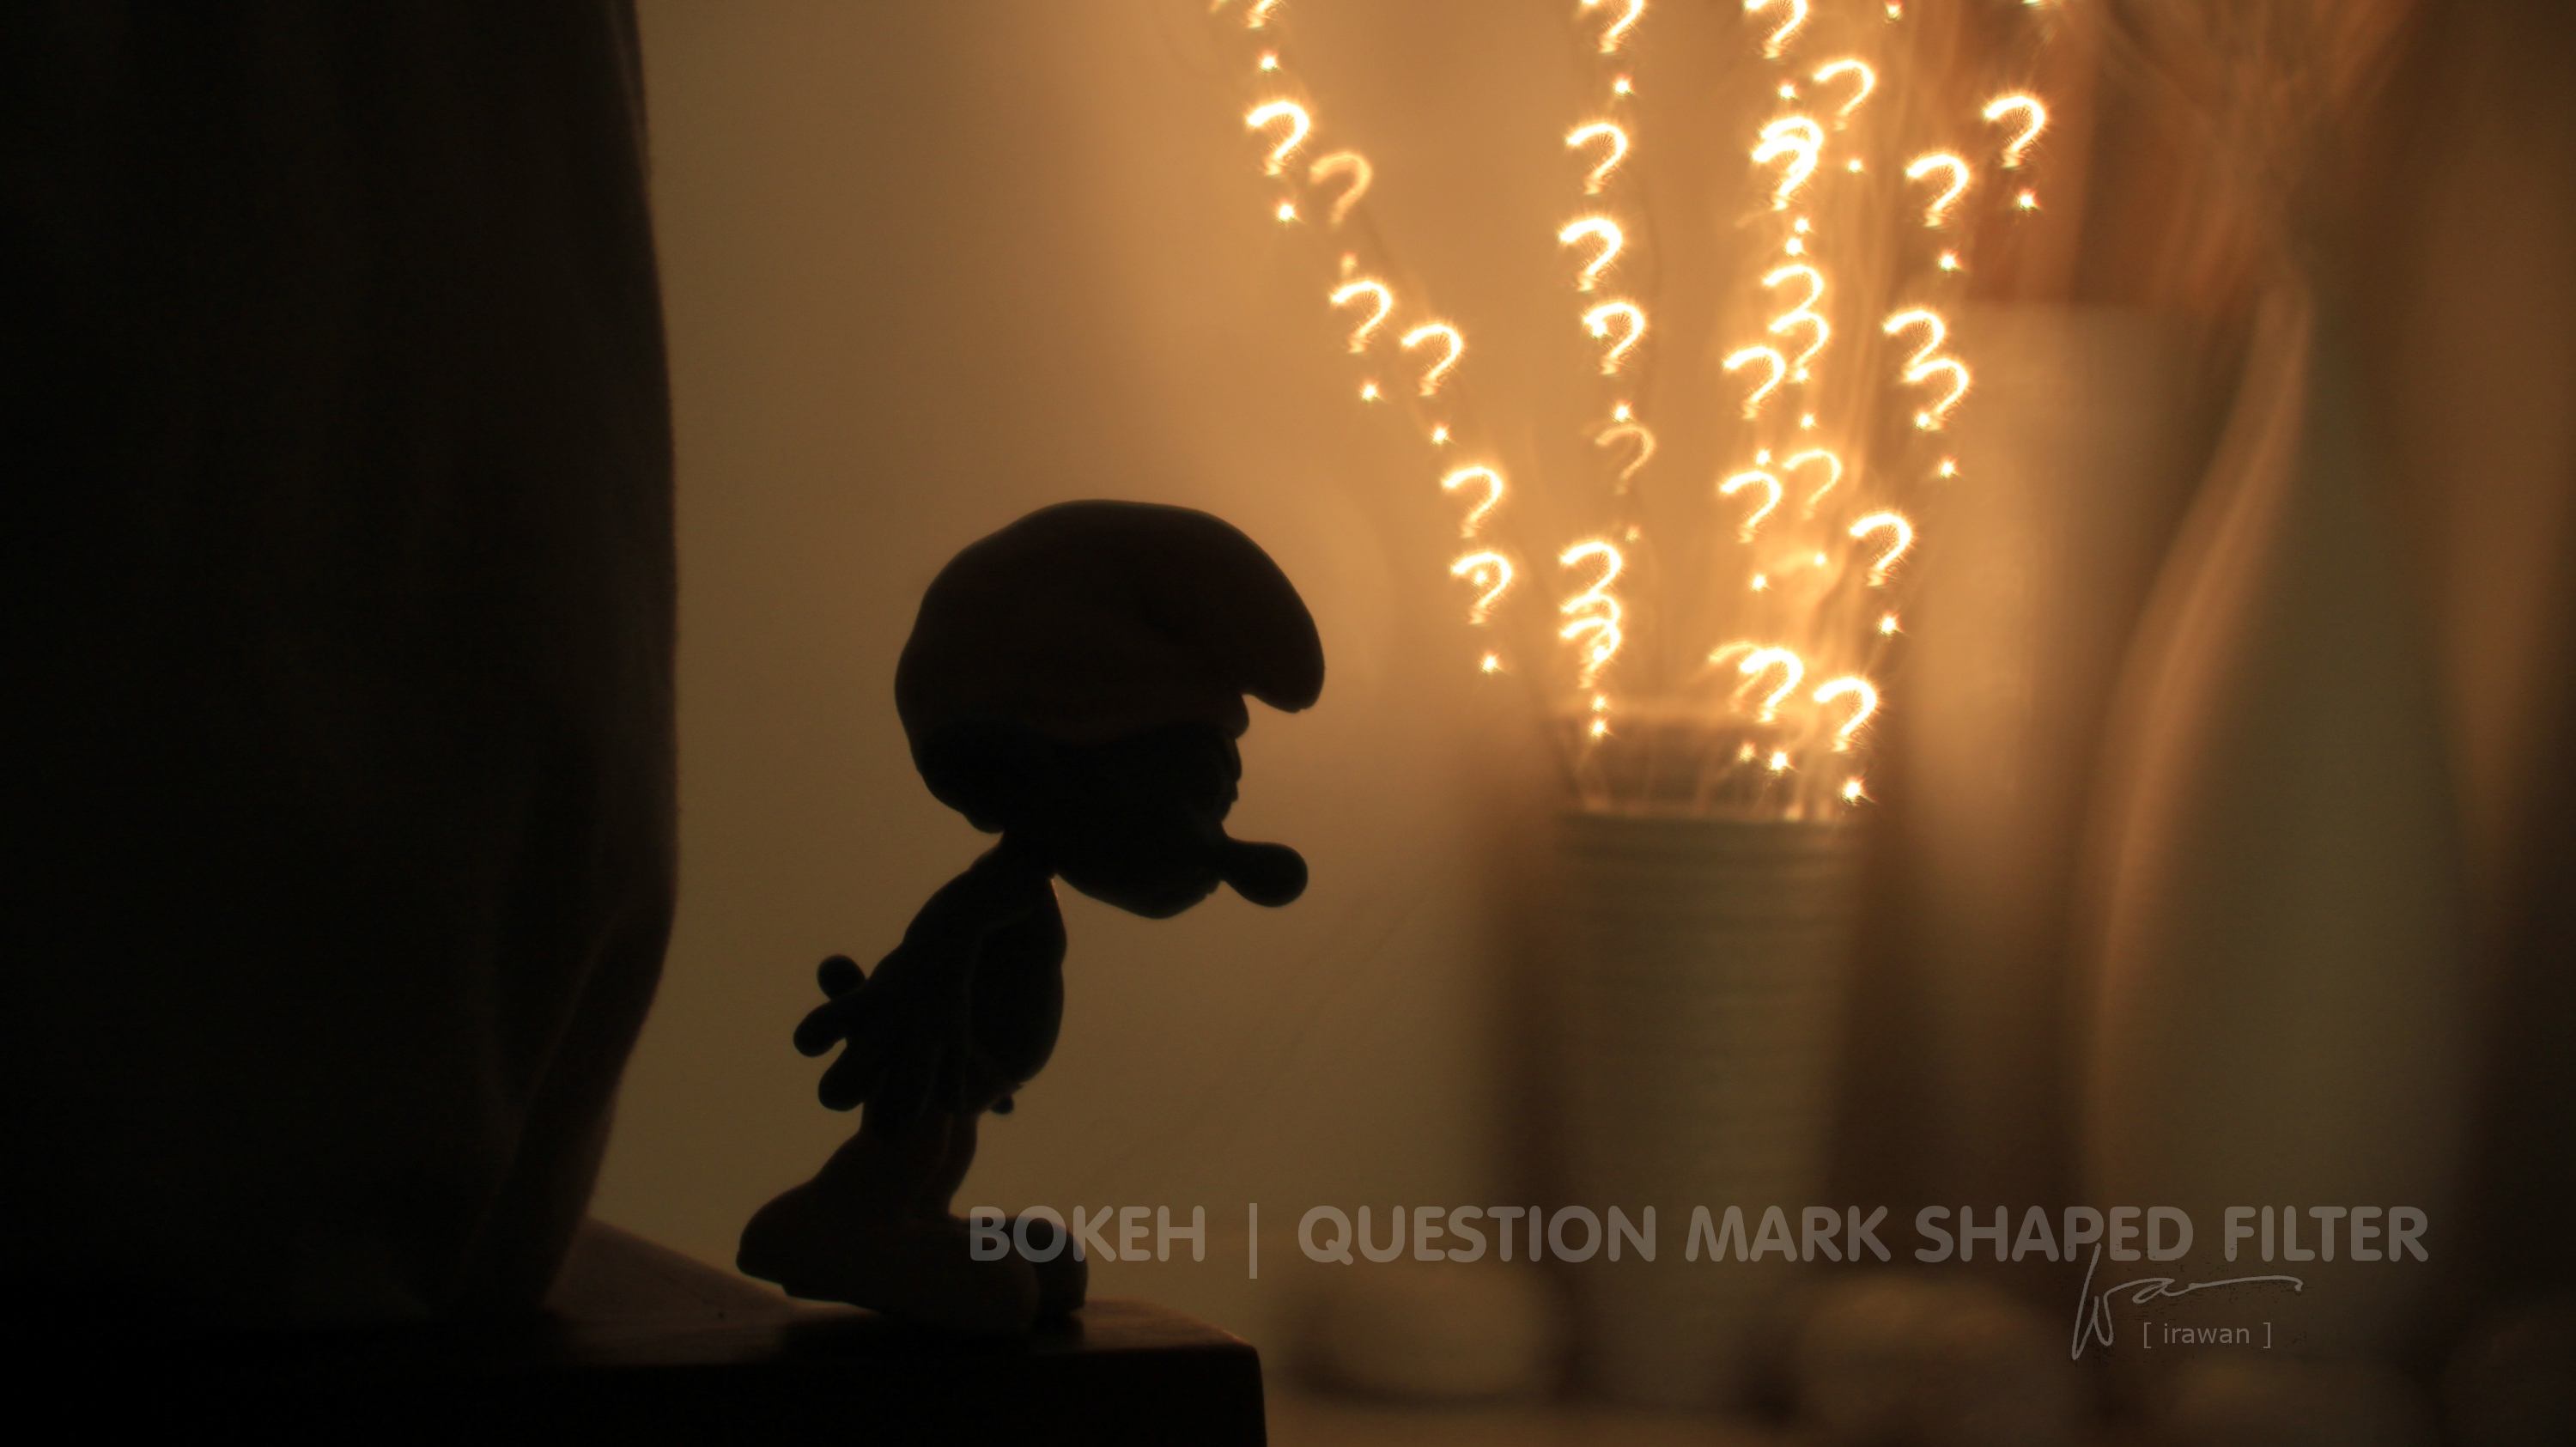 Bokeh with question mark shaped filter